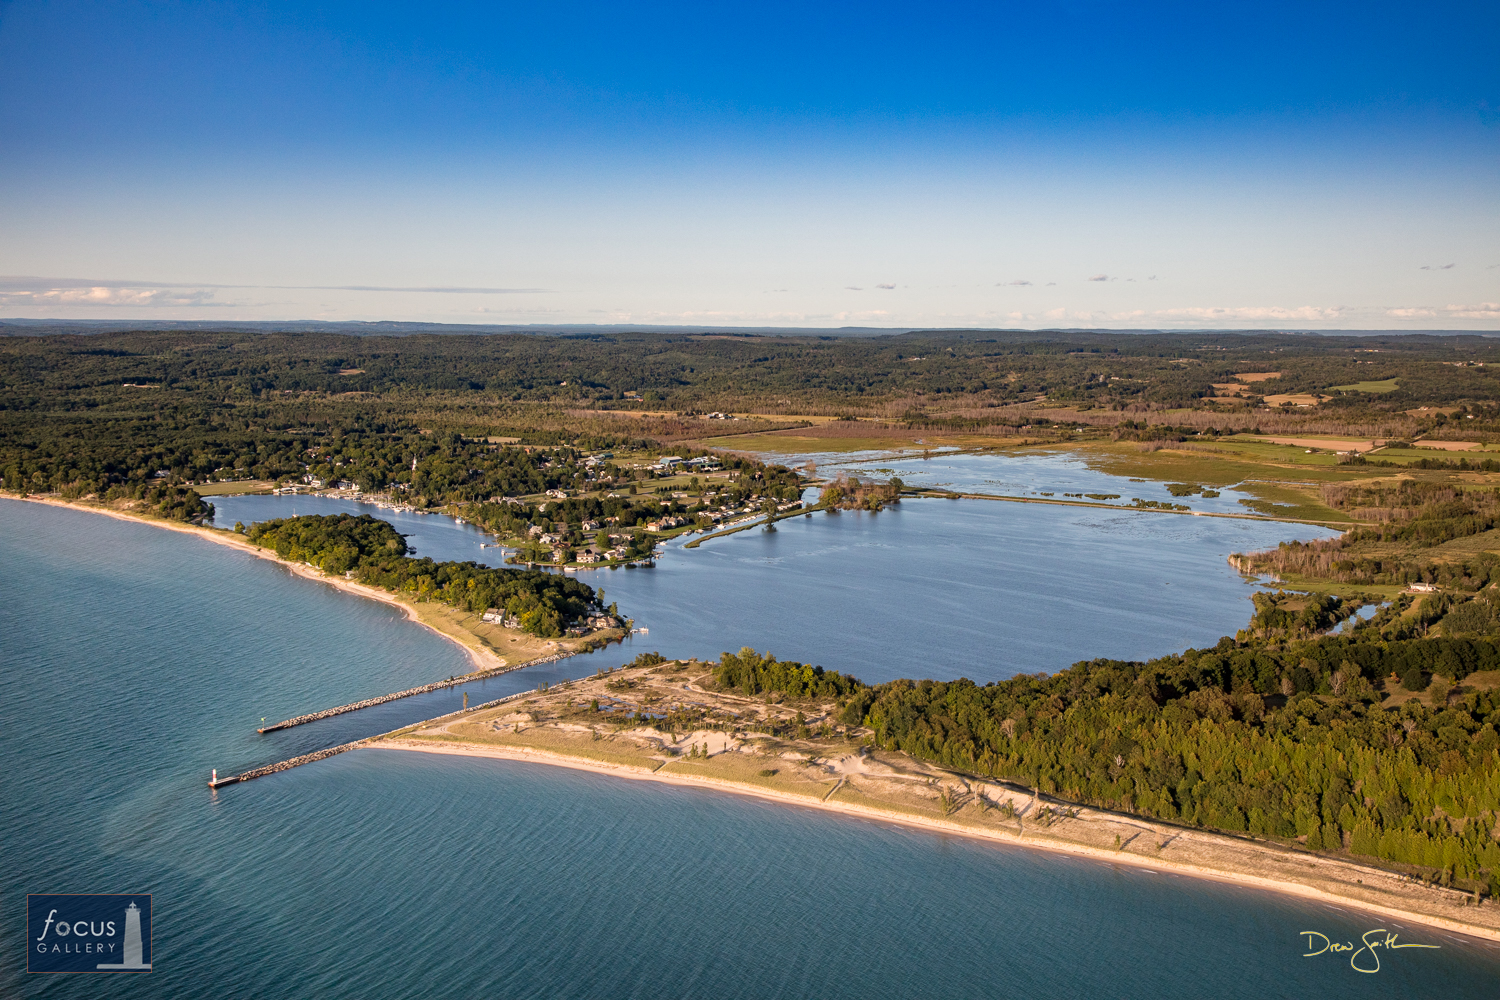 Photo © Drew Smith View of Arcadia, Arcadia Lake and the outlet to Lake Michigan in Manistee County.